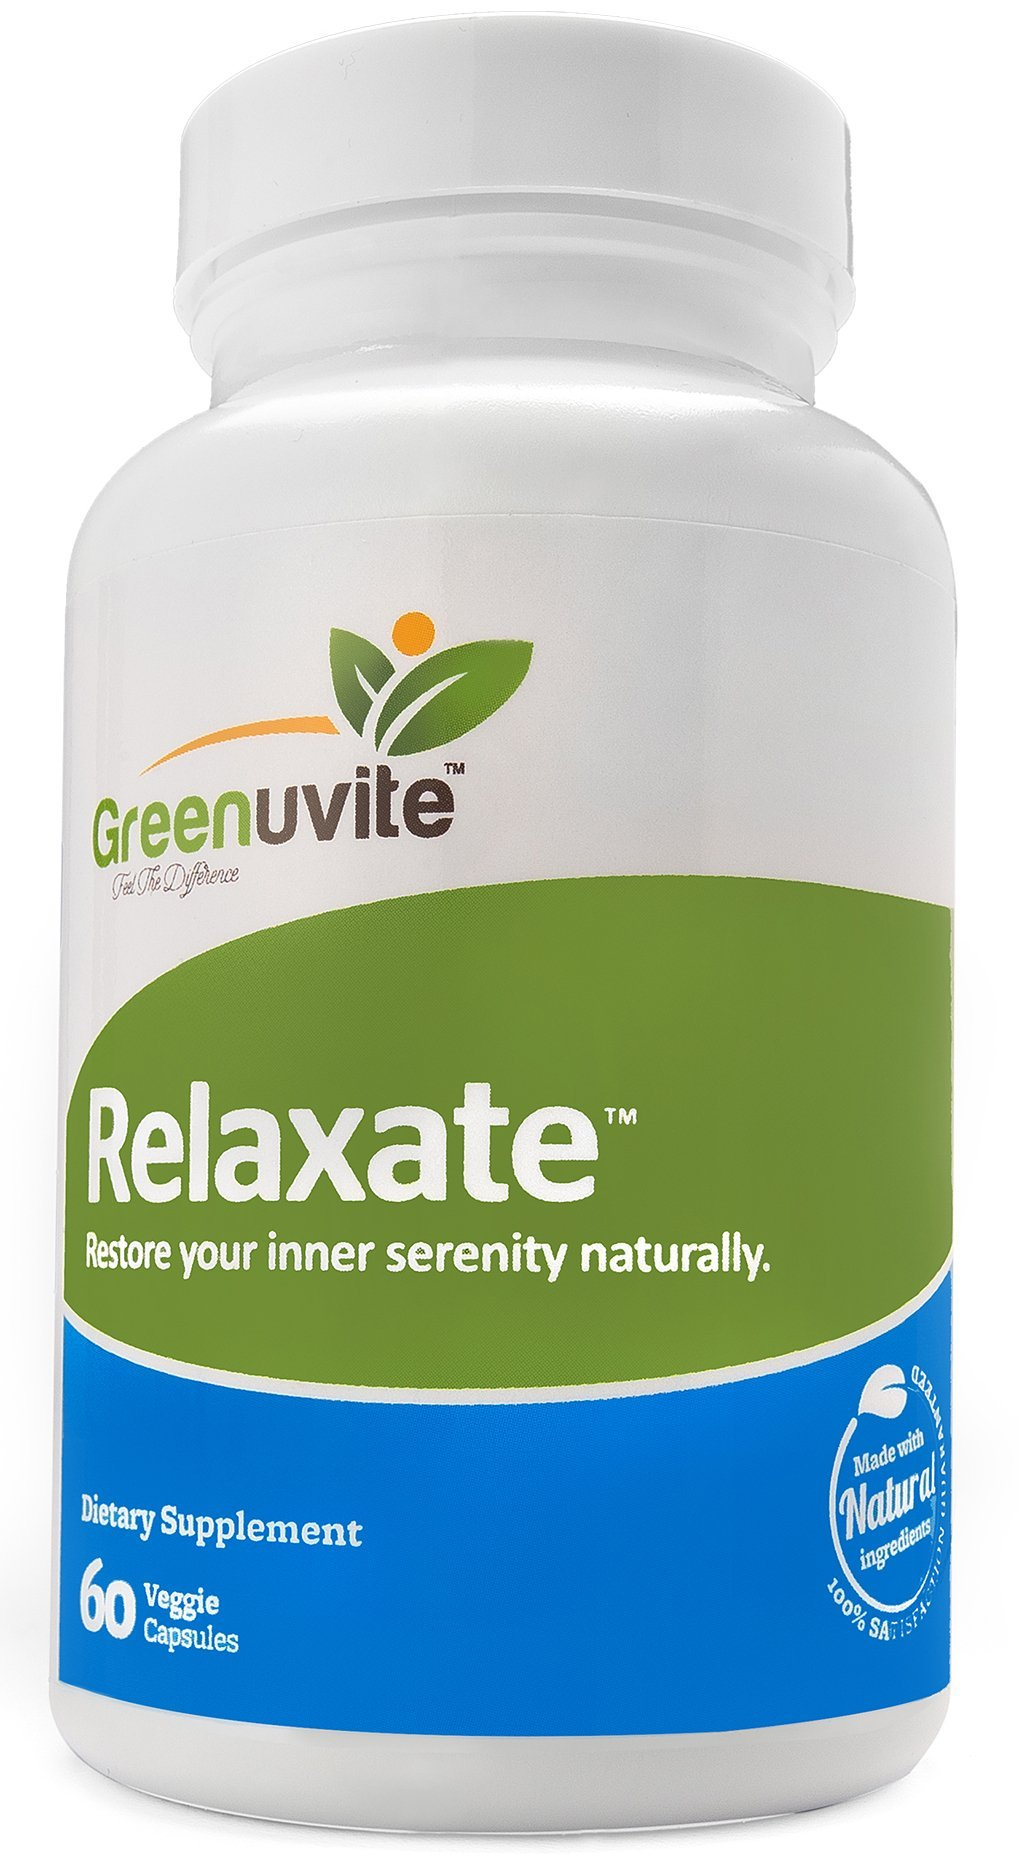 Greenuvite Natural Anxiety, Stress & Panic Relief Supplement, Mood Booster - Contains Inositol, Passionflower, Lemon balm Calcium Ashwagandha & Magnesium. 60 Veggie Capsules